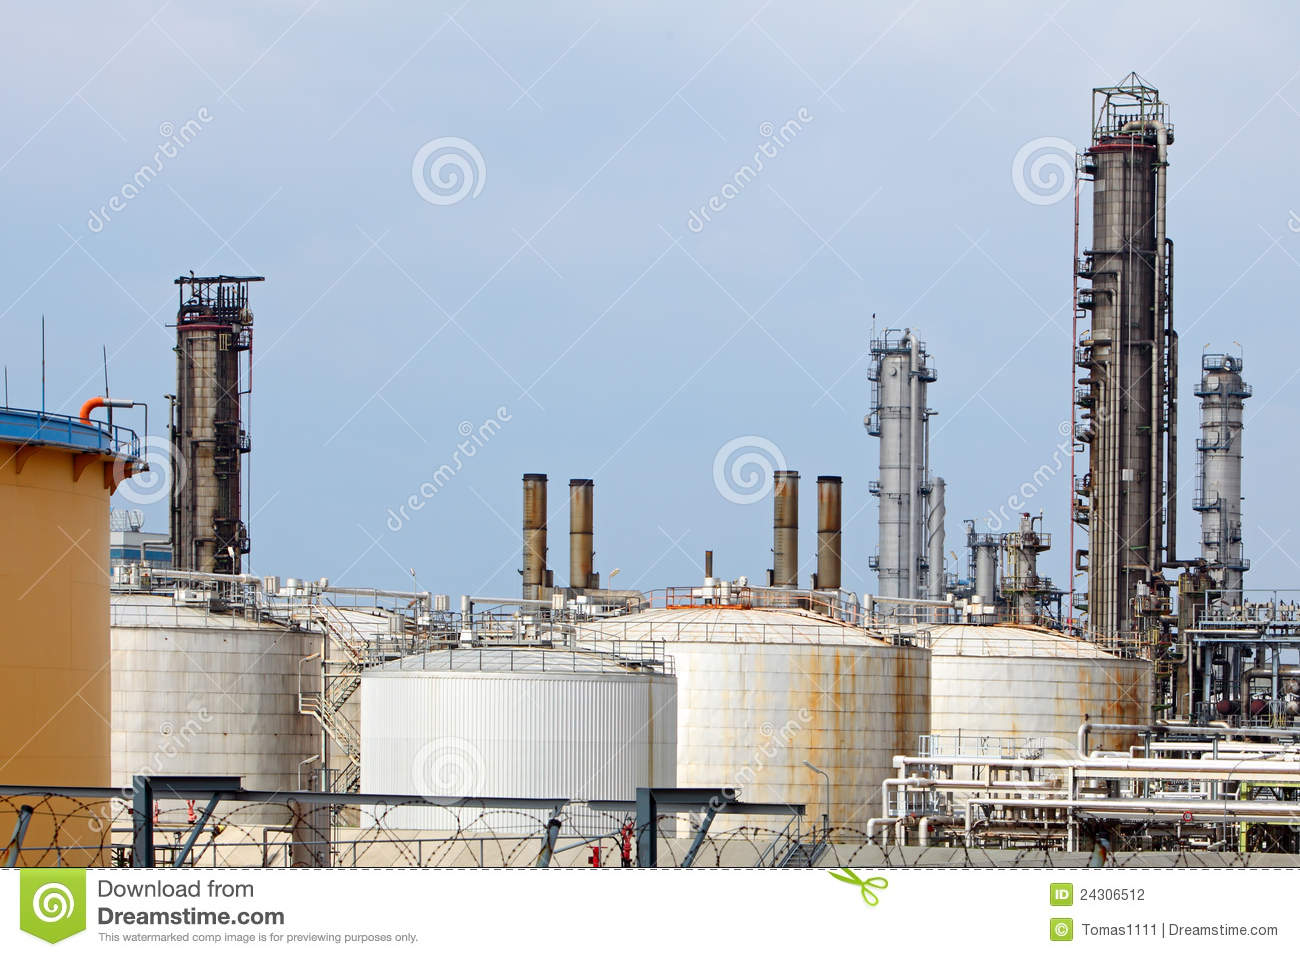 Pipes And Tanks Of Oil Refinery Stock Photography - Image: 24306512